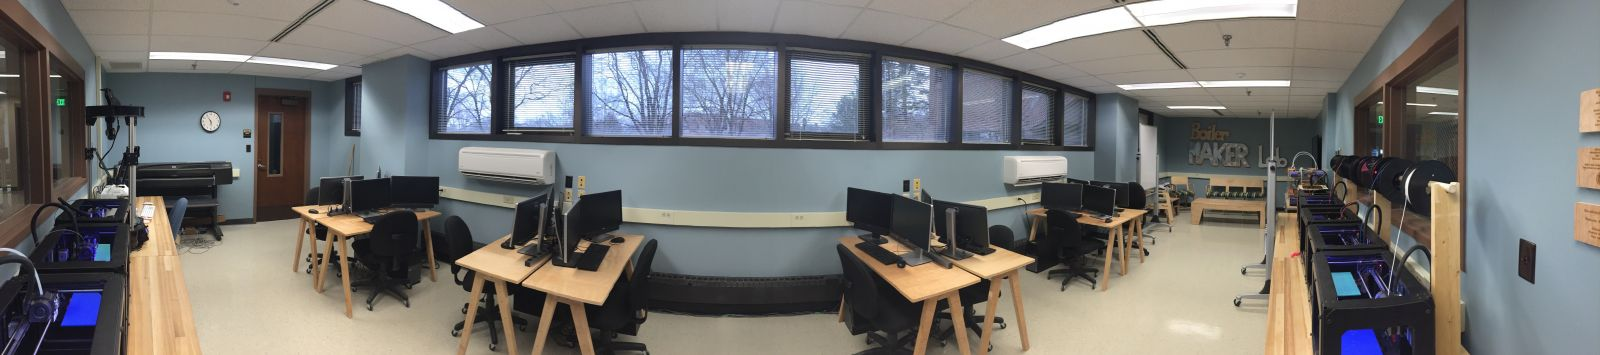 Image of the BoilerMAKER Lab in Knoy 155